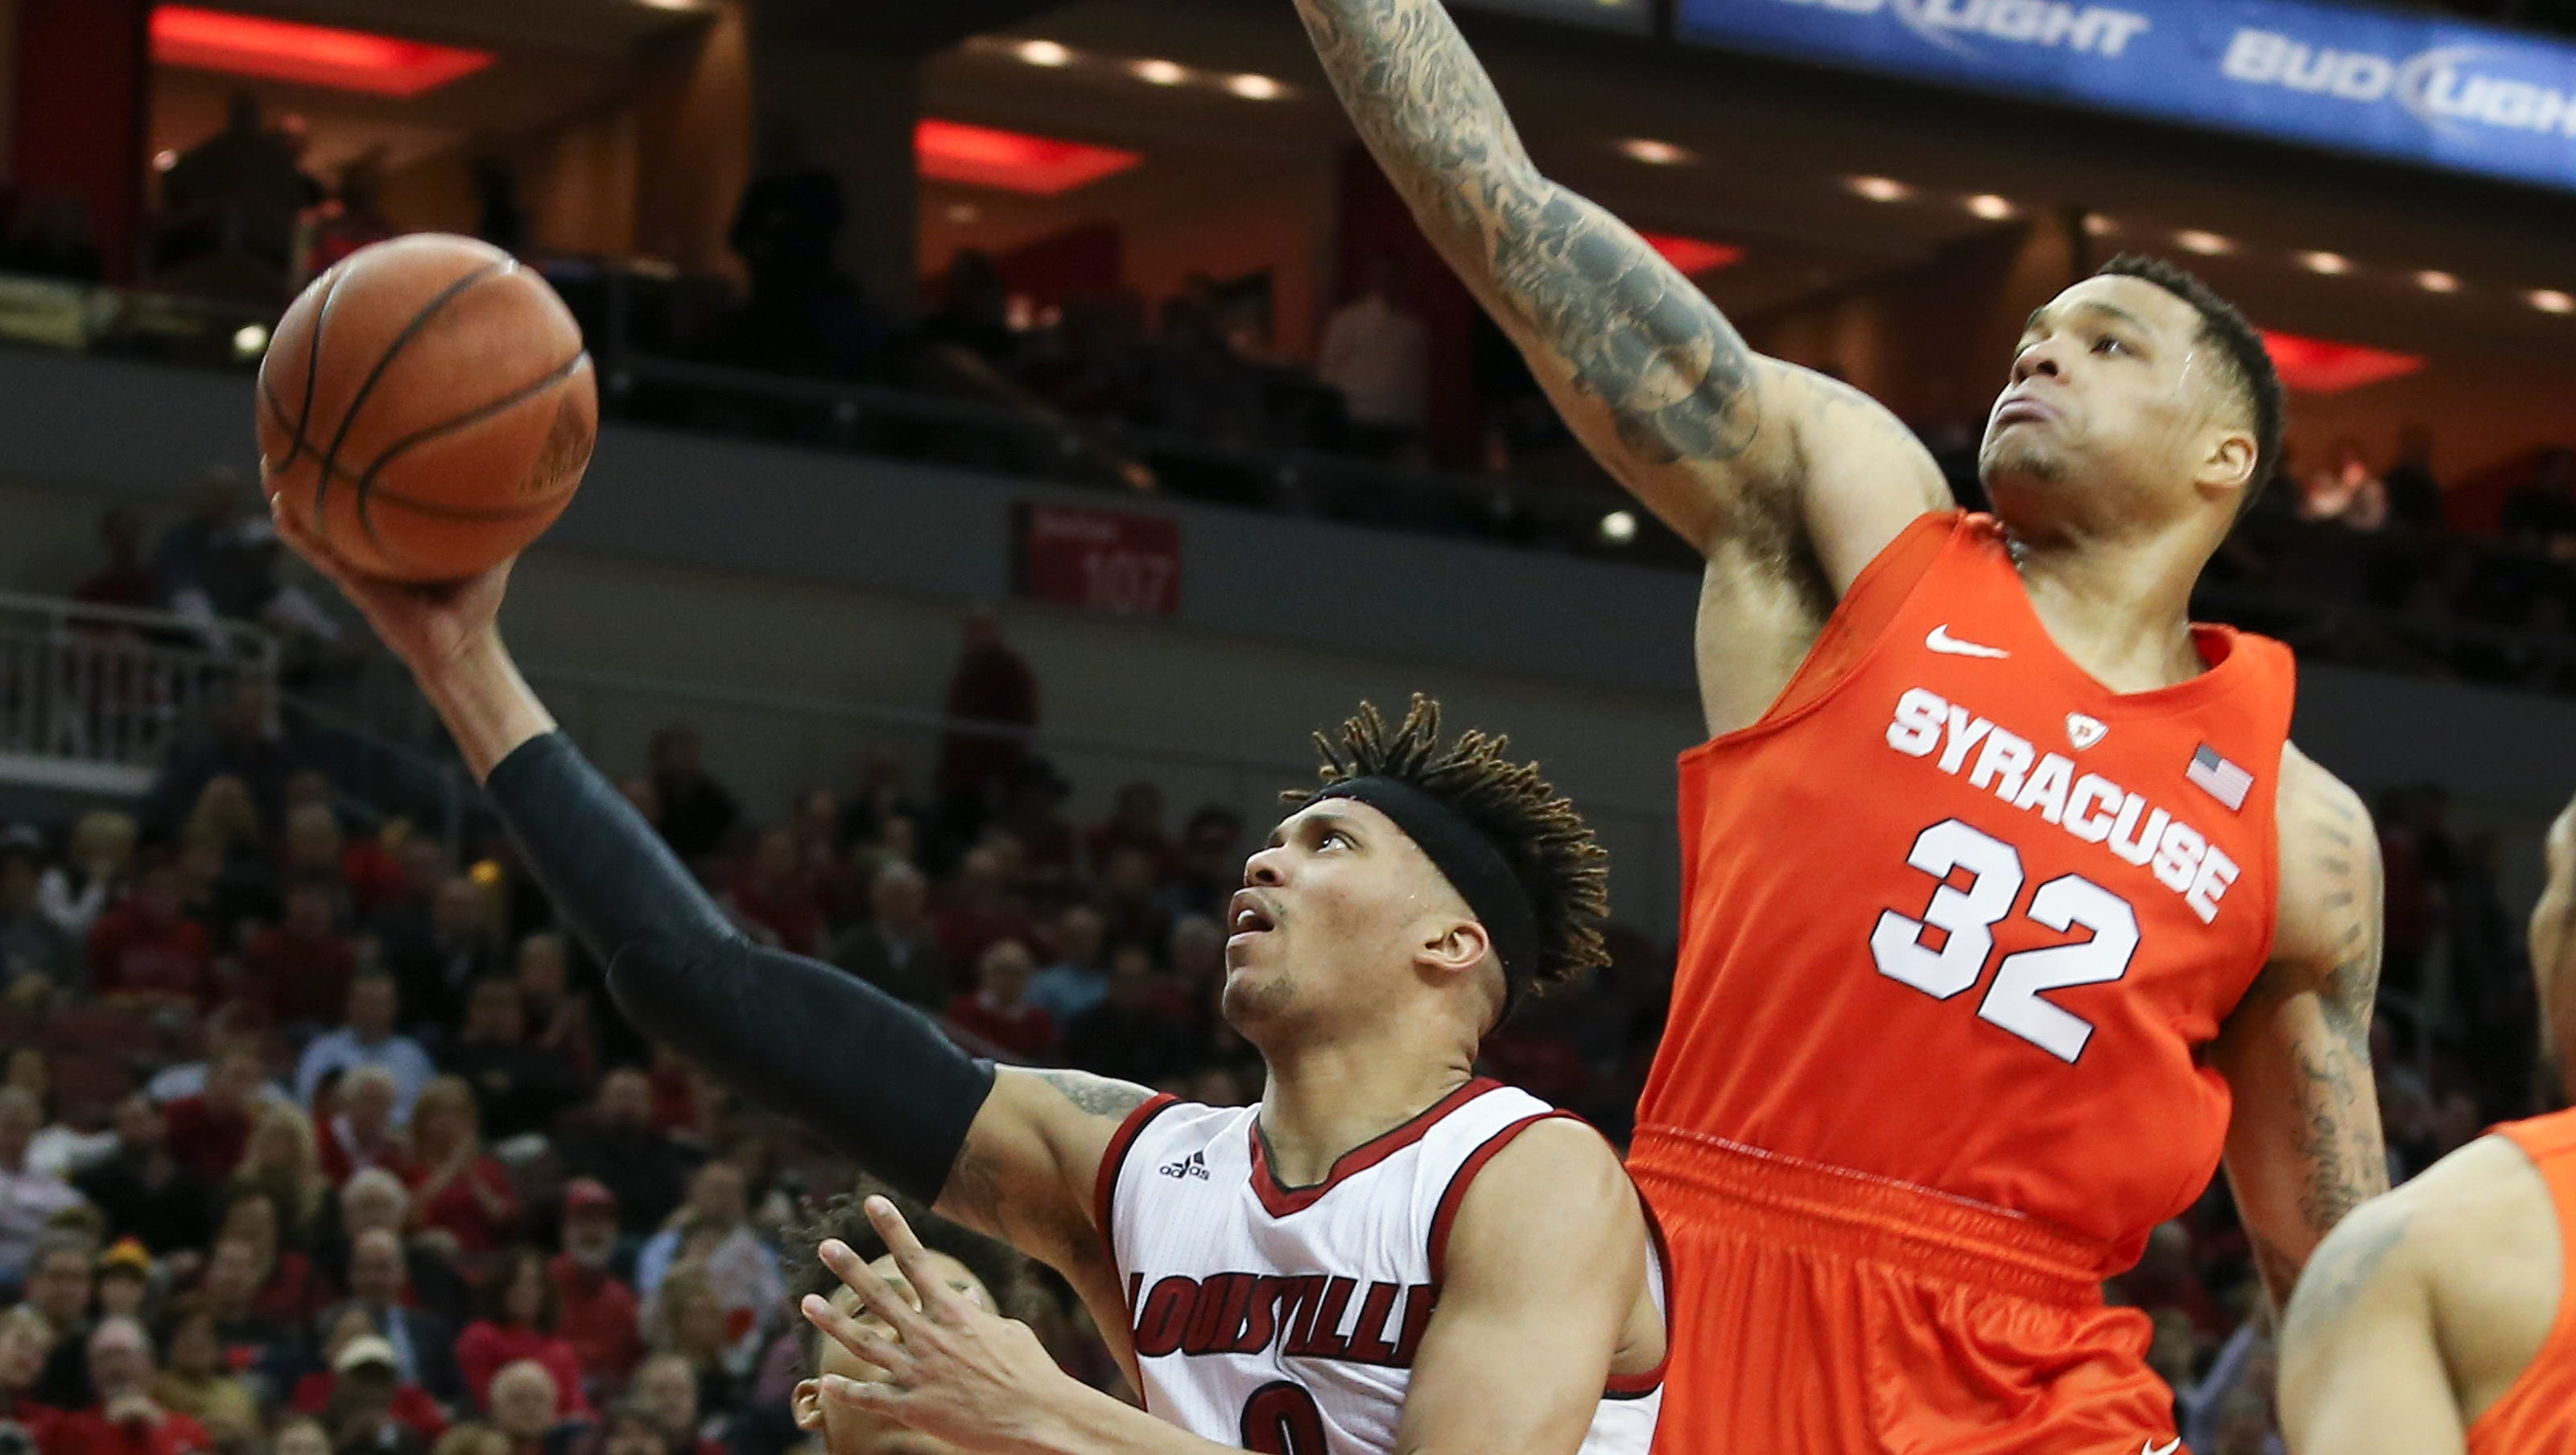 Video Highlights And There Are Many Louisville Vs Syracuse